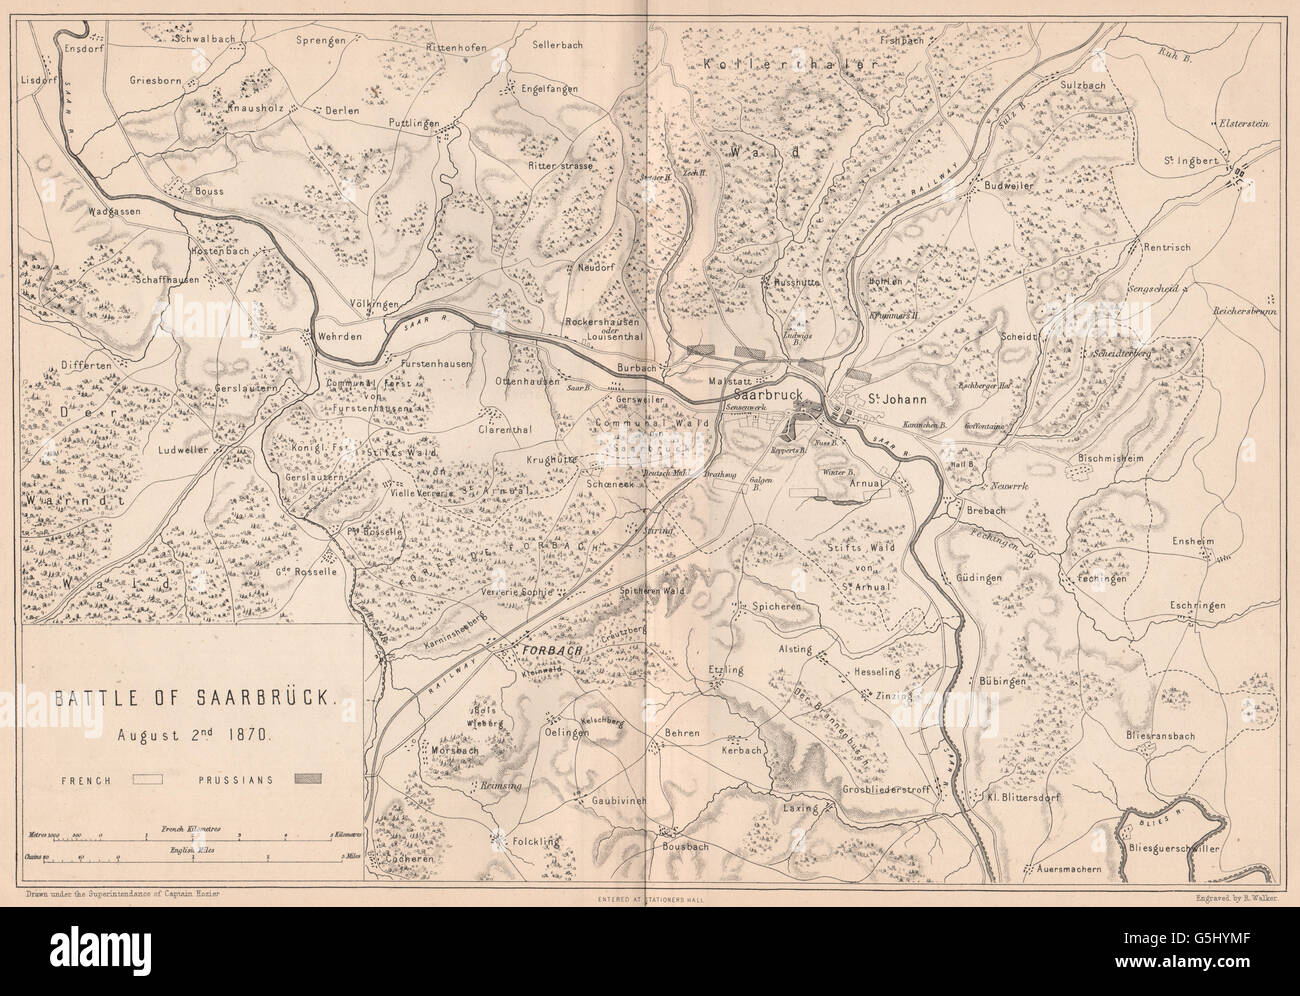 Saarbrucken Germany Map.Franco Prussian War Battle Of Saarbrucken 1870 Forbach Germany